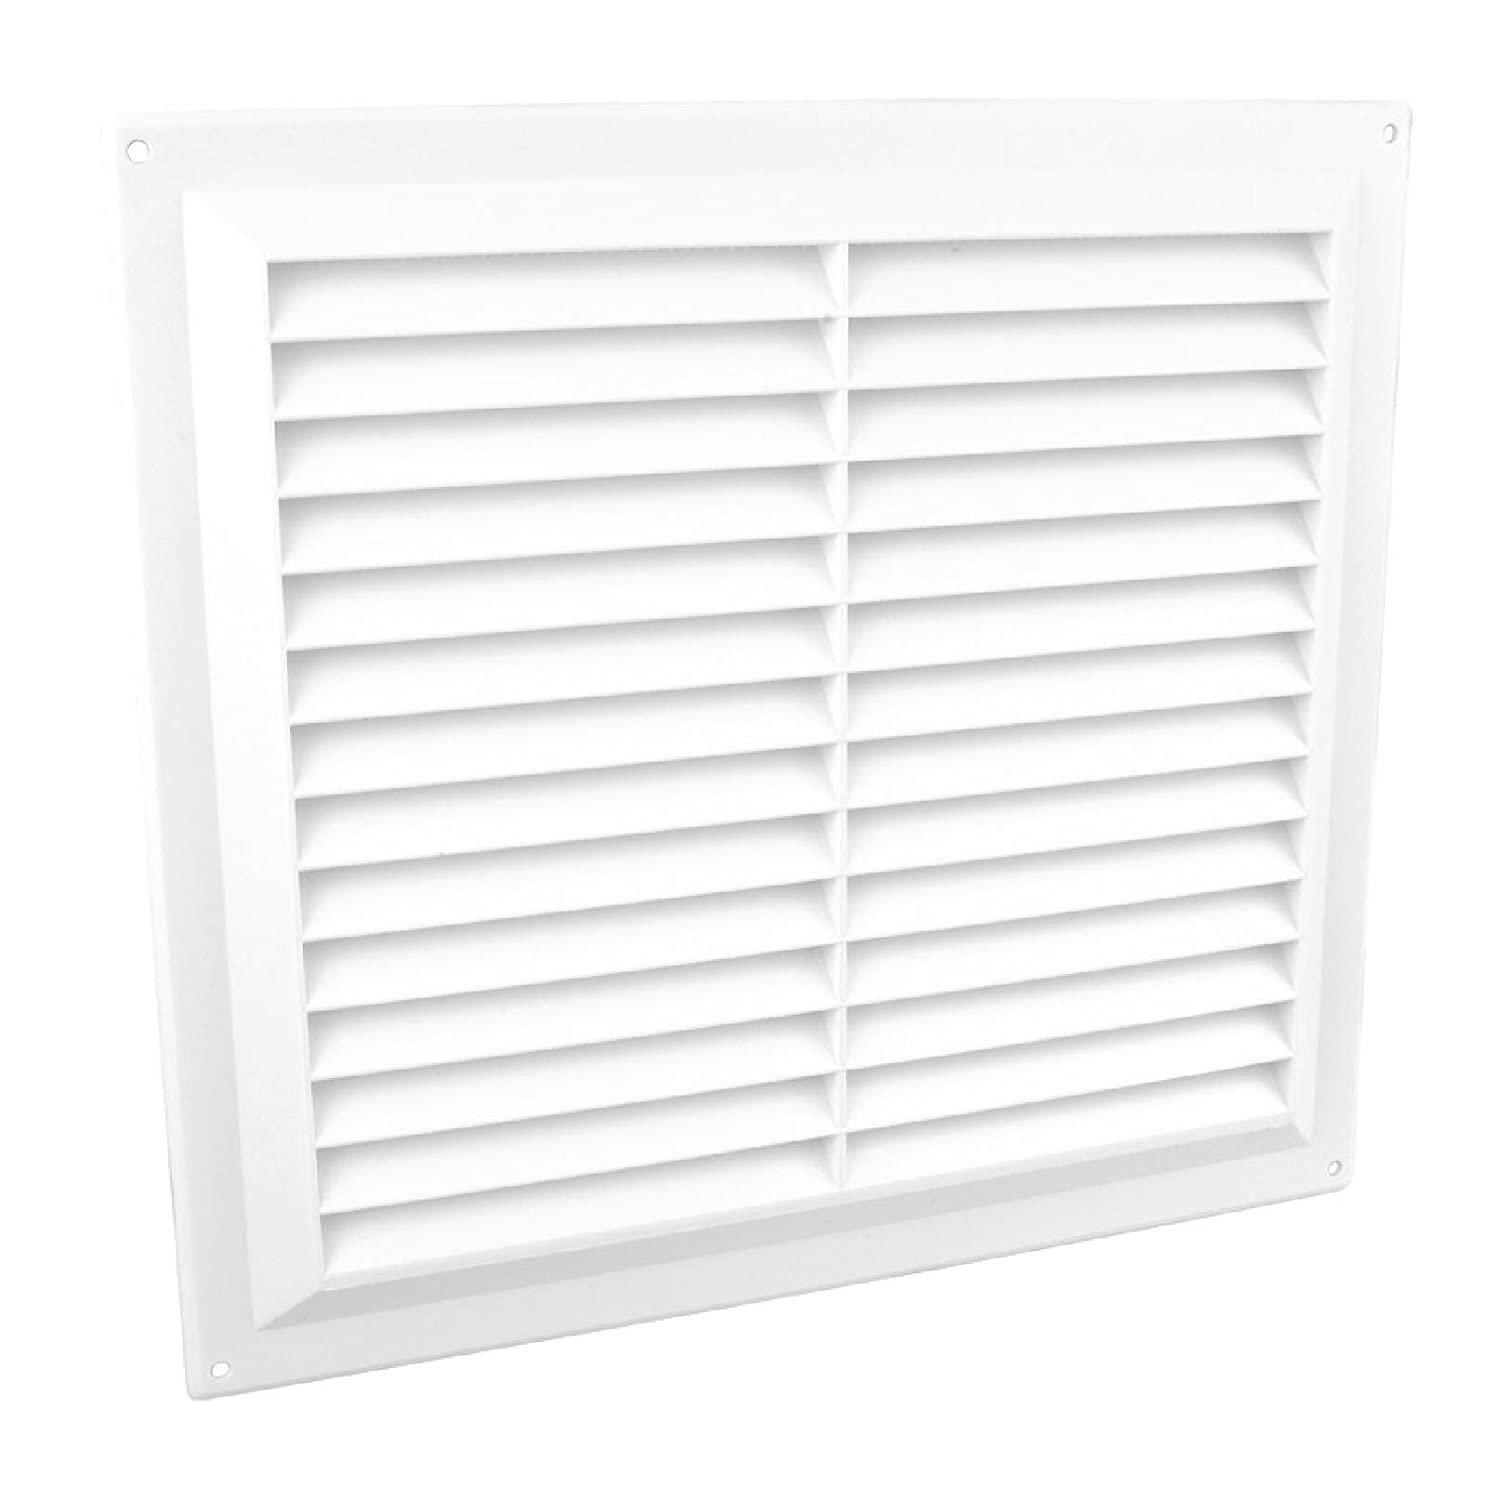 9' x 9' White Plastic Louvre Air Vent Grille with Flyscreen Cover Home Smart